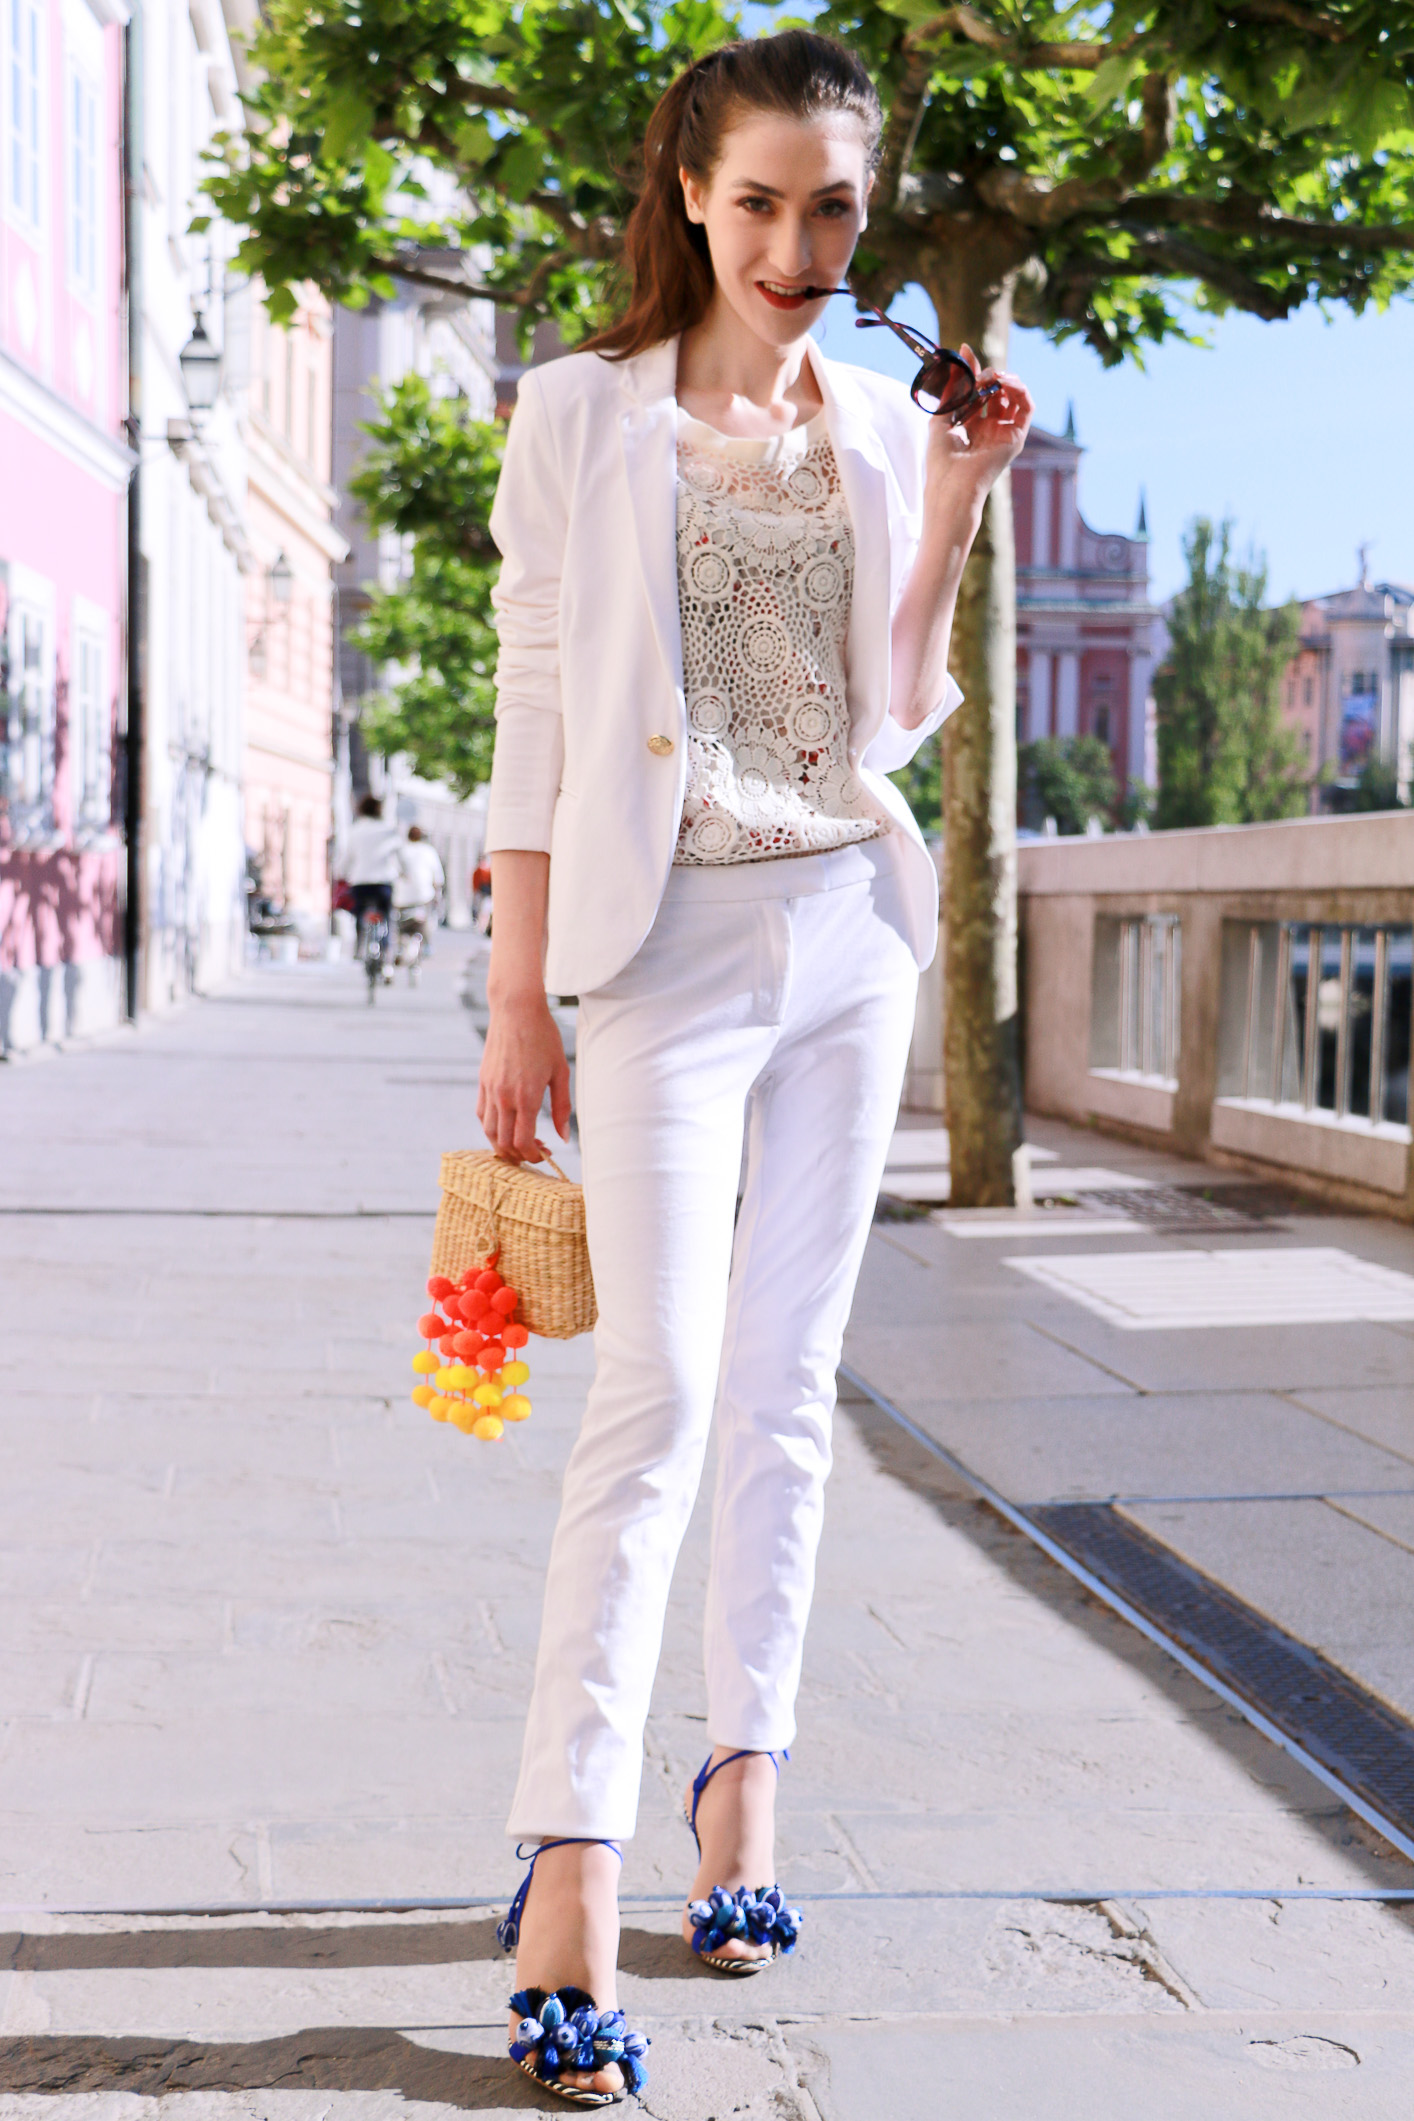 Fashion blogger Veronika Lipar of Brunette From Wall Street wearing all white pantsuit on the streets